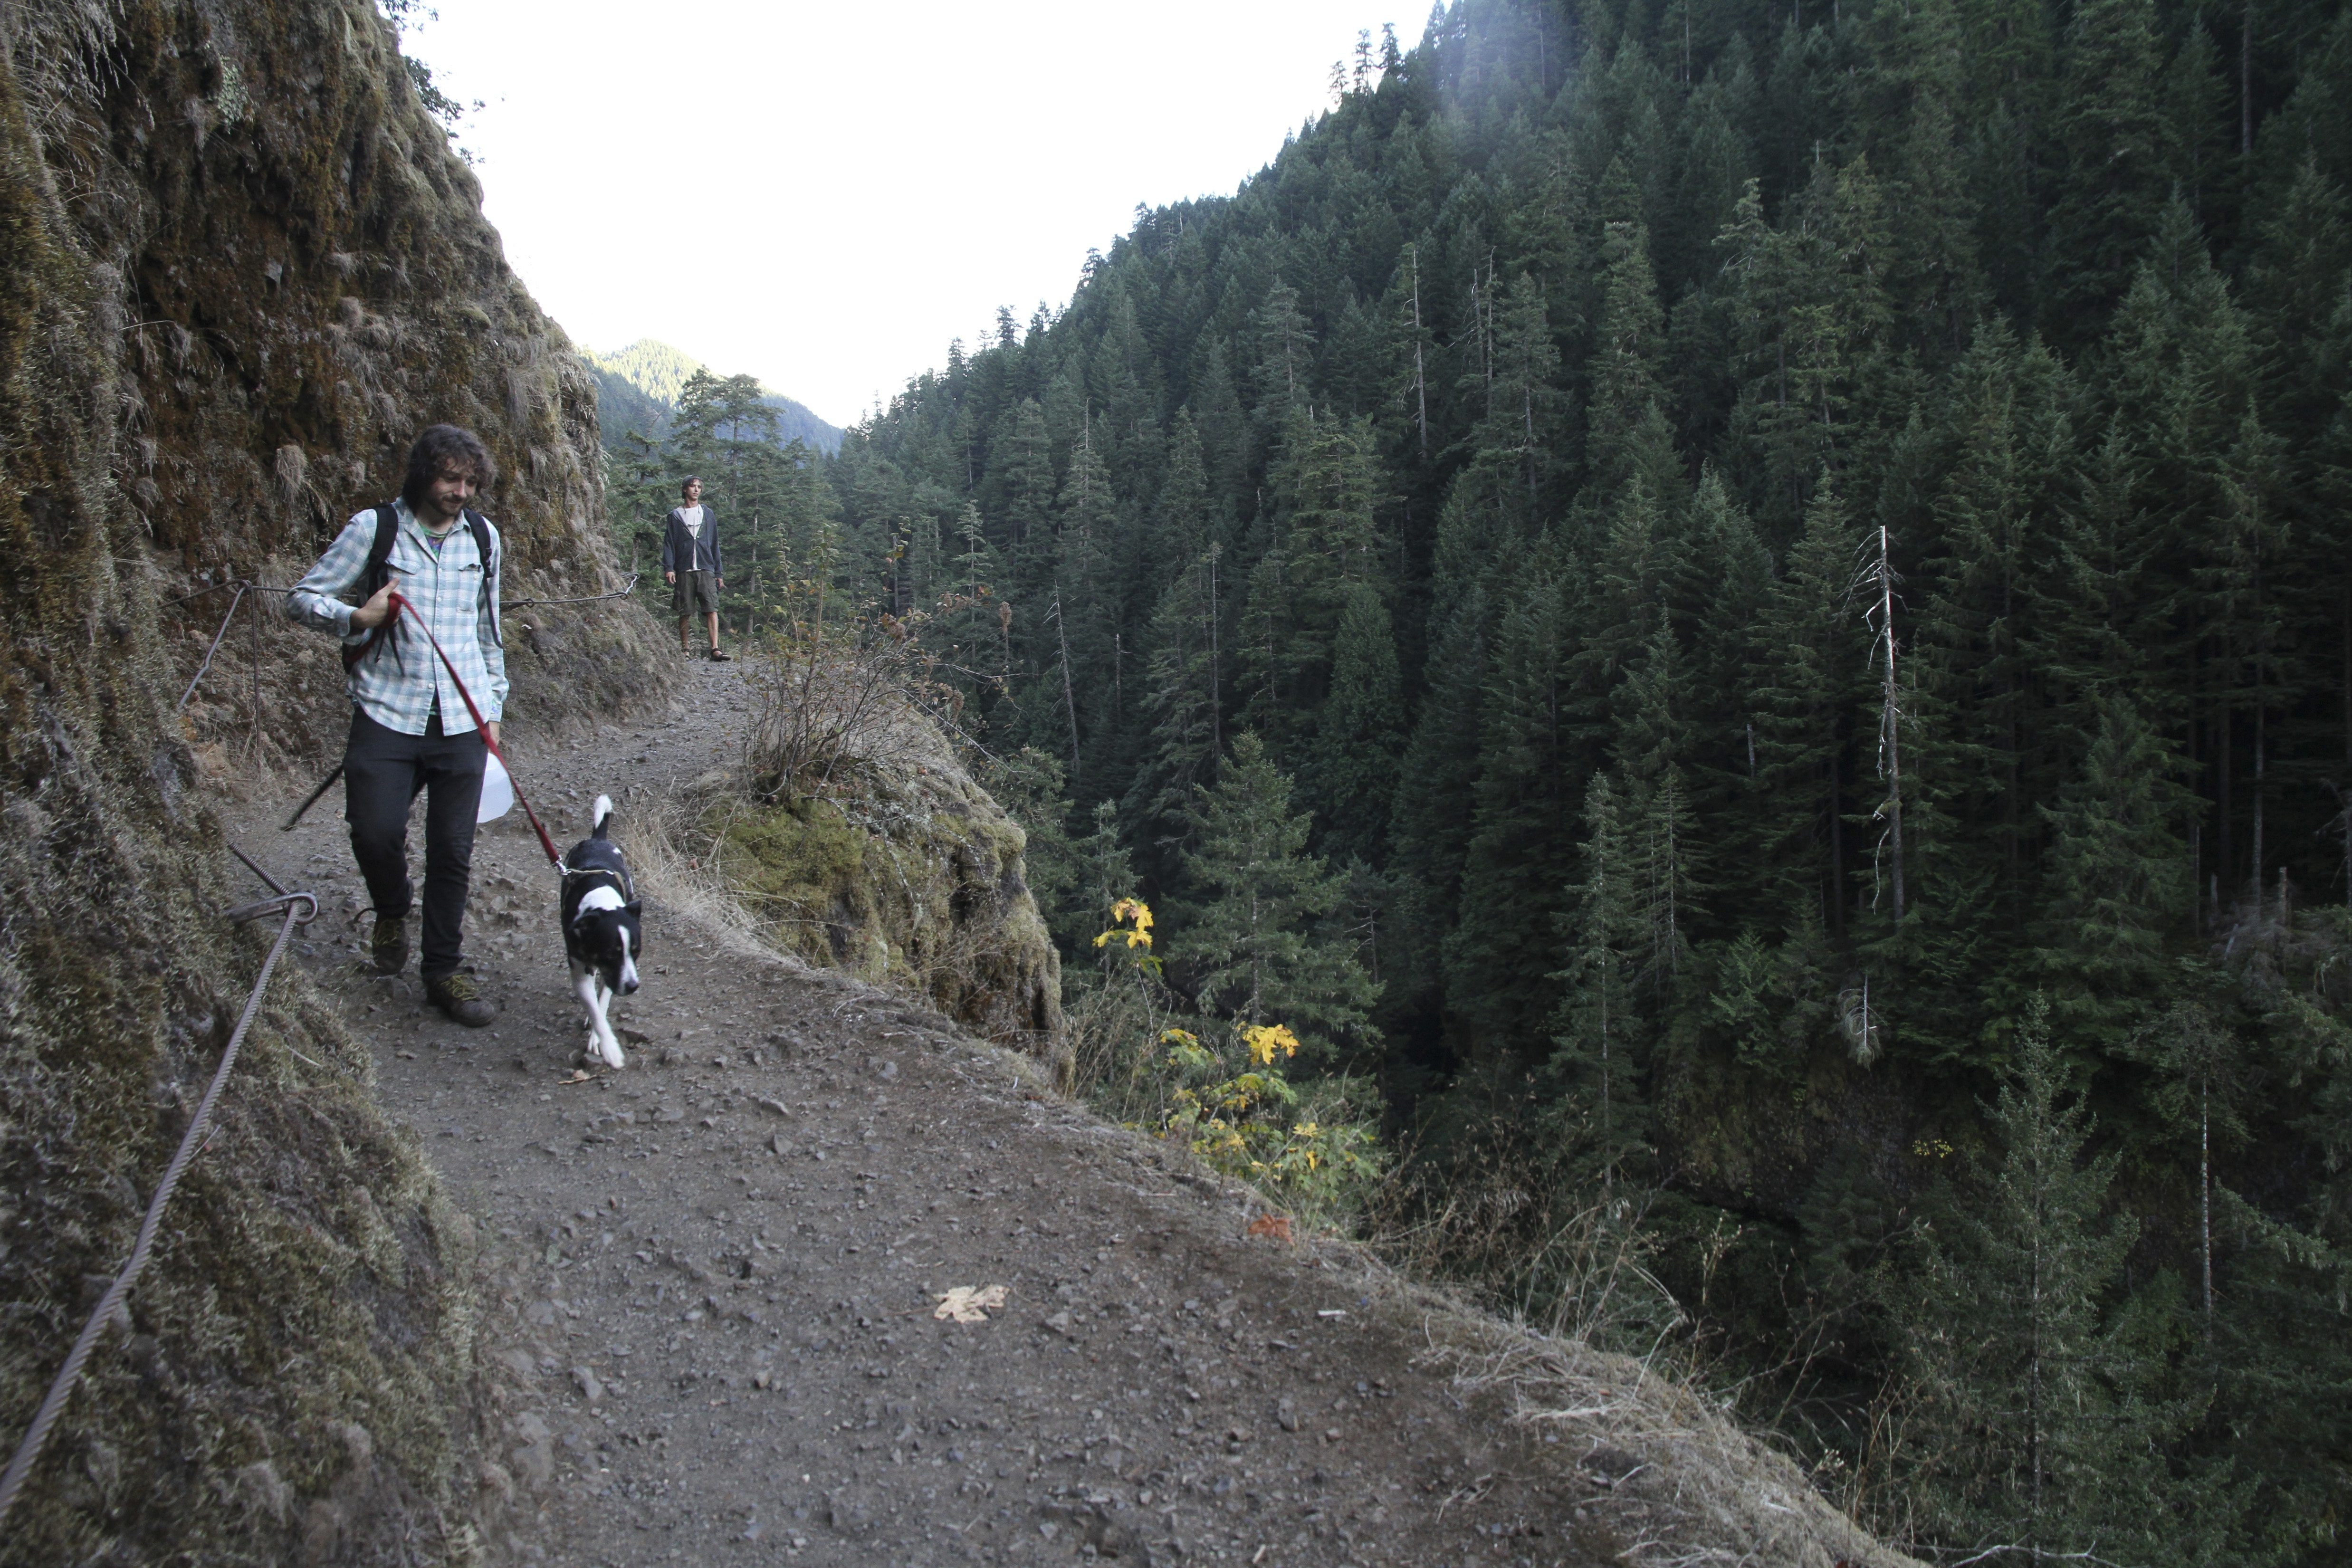 Hikers traversing Eagle Creek Trail in Mount Hood National Forest east of Portland, Ore., are treated to spectacular scenery.